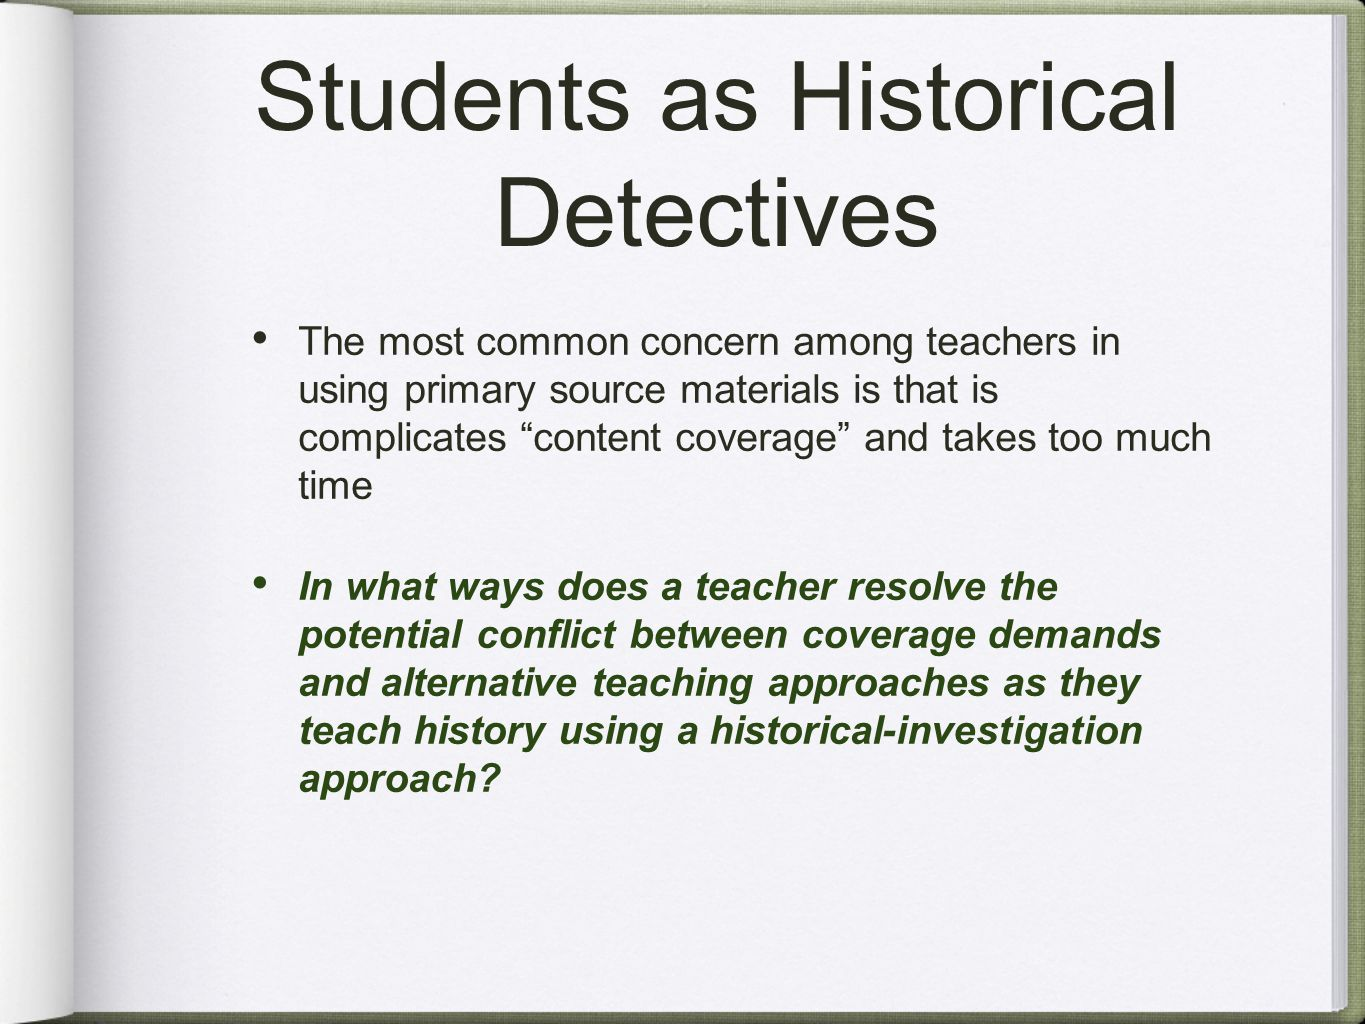 Students as Historical Detectives The most common concern among teachers in using primary source materials is that is complicates content coverage and takes too much time In what ways does a teacher resolve the potential conflict between coverage demands and alternative teaching approaches as they teach history using a historical-investigation approach